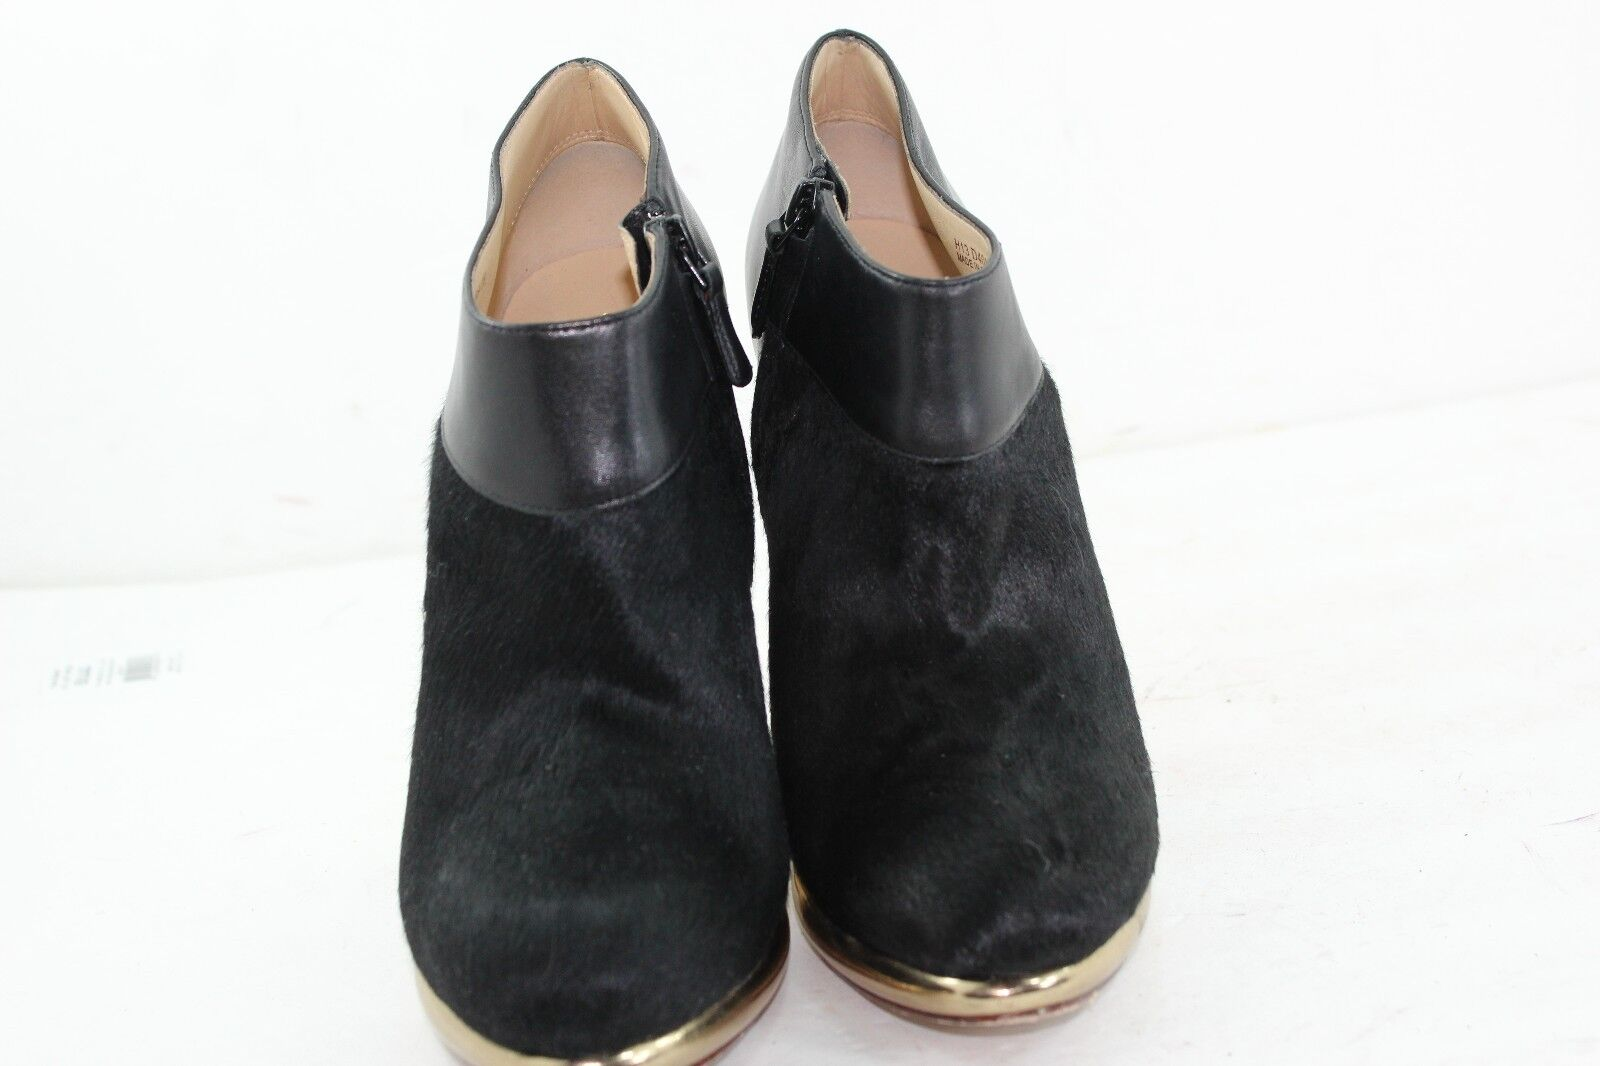 COLE HAAN REAL FUR DYED COW SIZE 8 B BALCK BALCK BALCK IN PRISTINE CONDITION a5e5c2